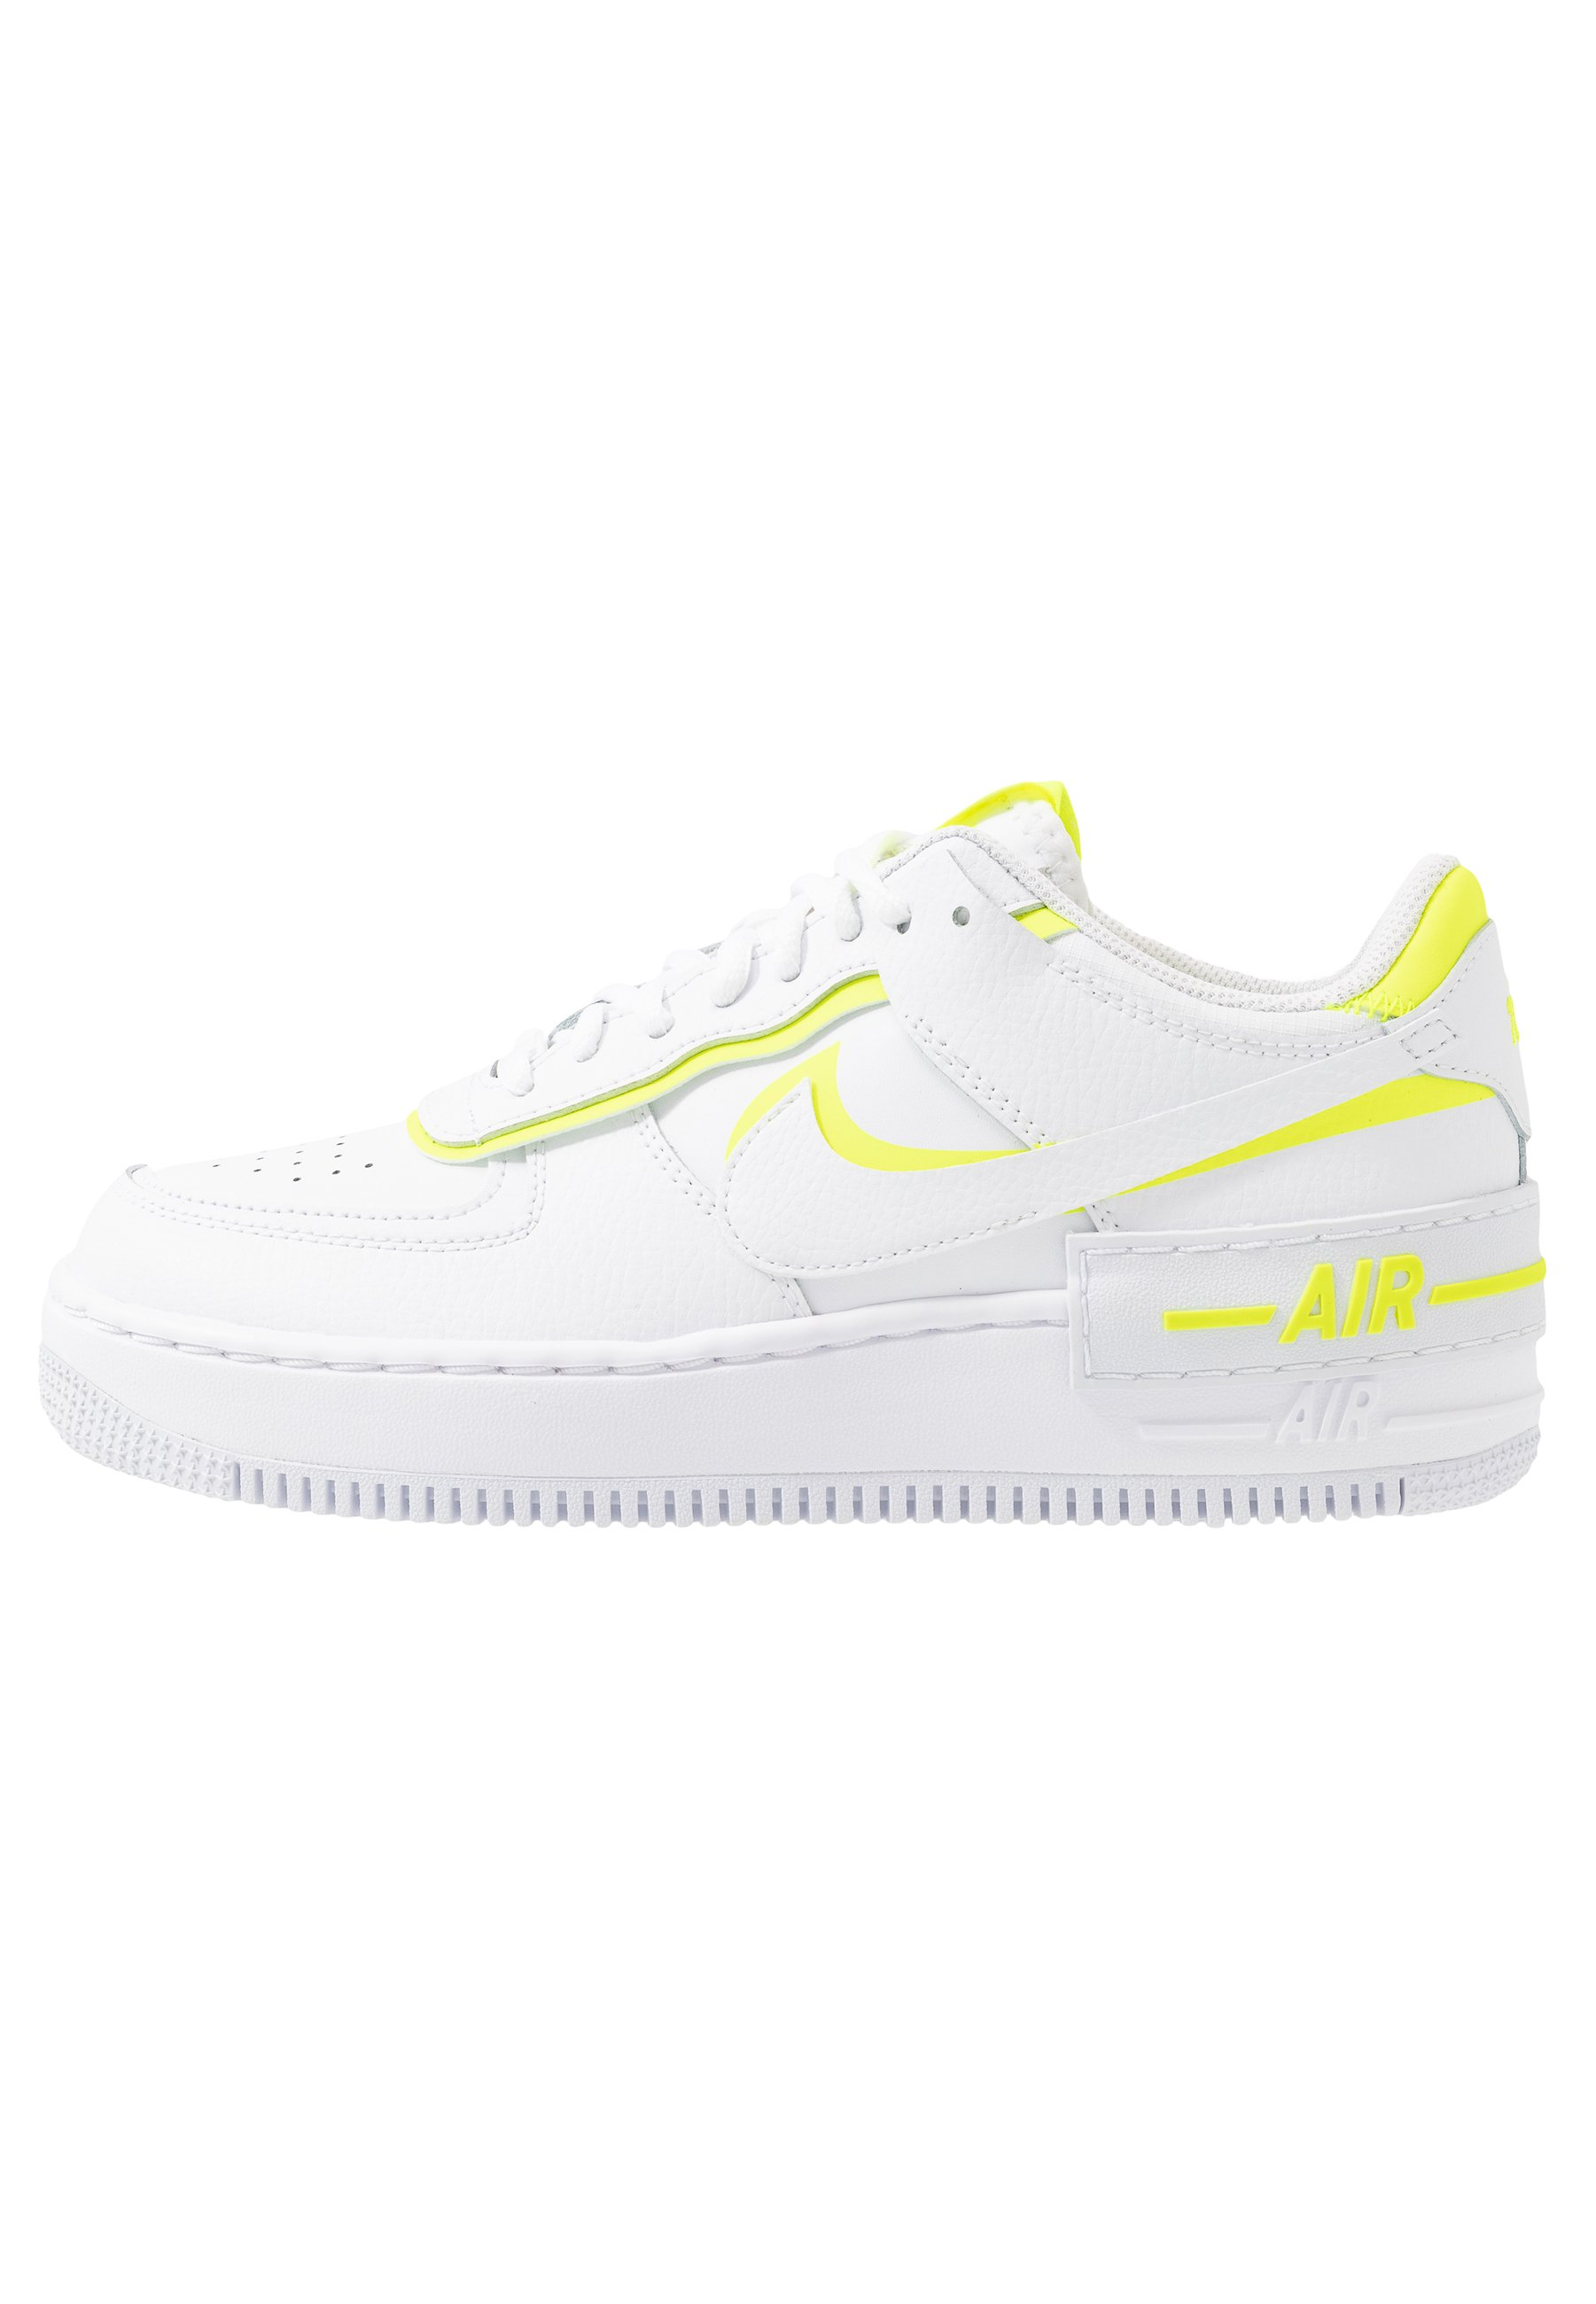 air force 1 giallo fluo